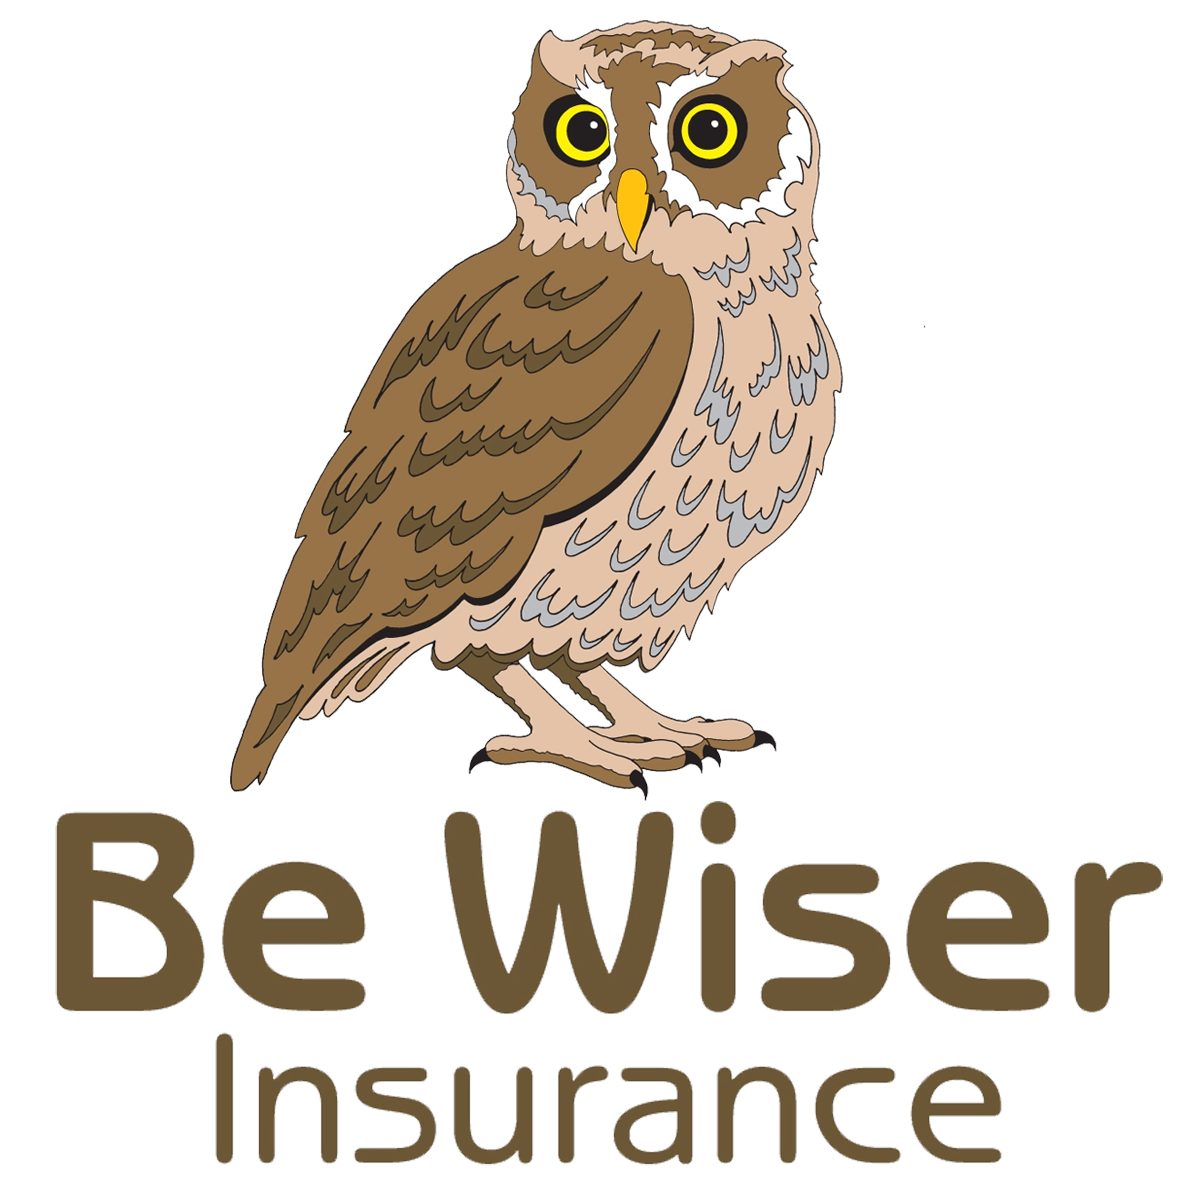 Be Wiser Progress Review V1.0